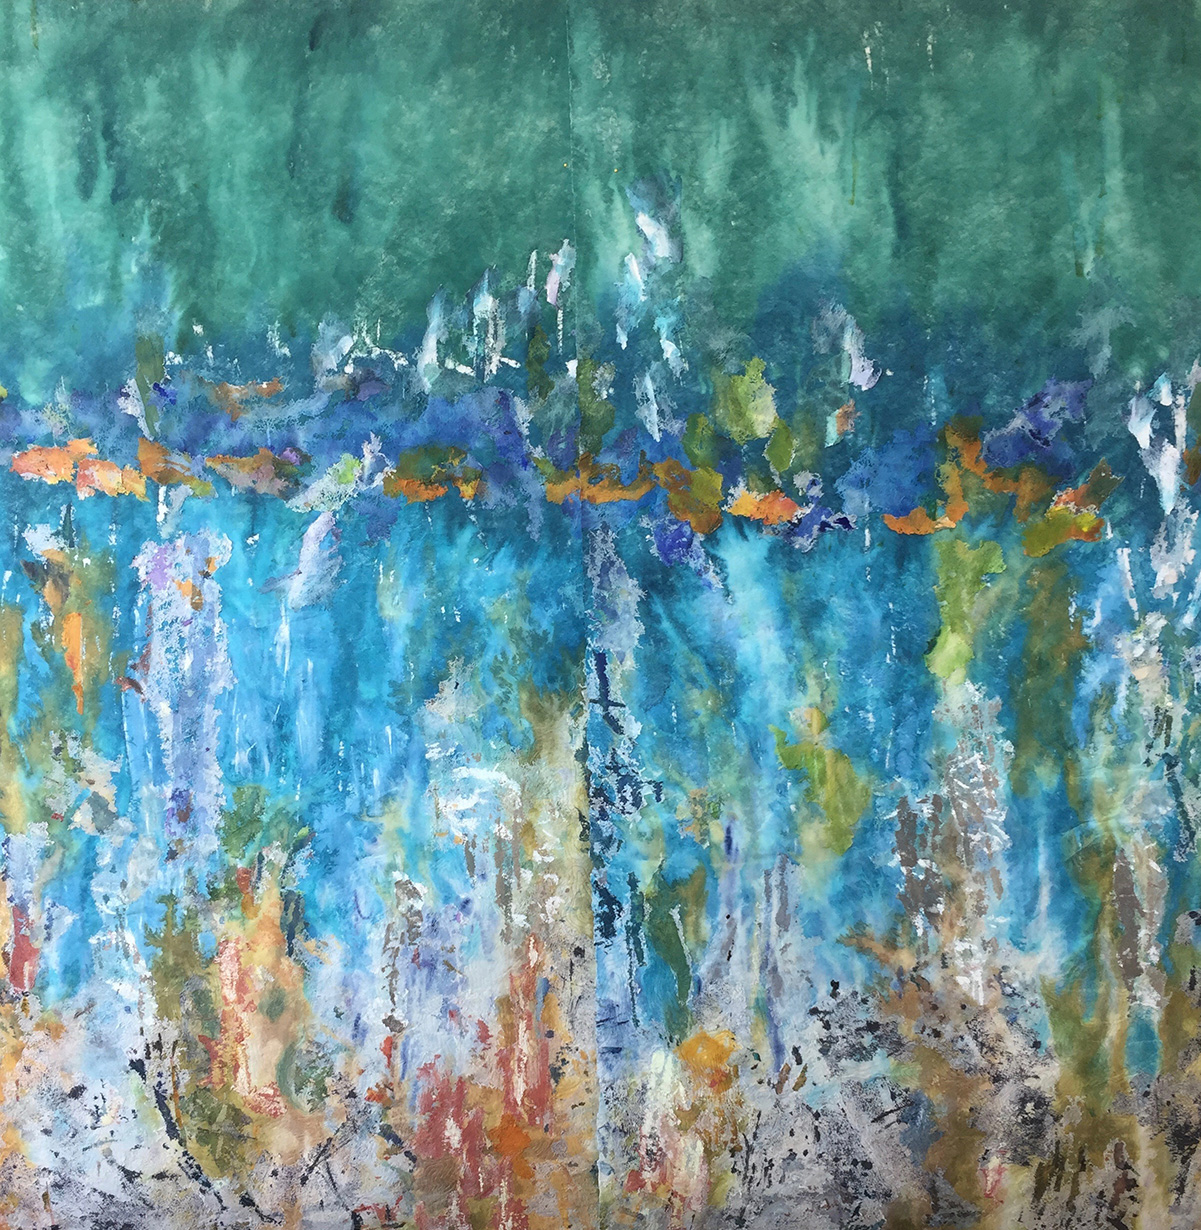 "Hull #1 80 x 80"" - Barbara Lee Smith"